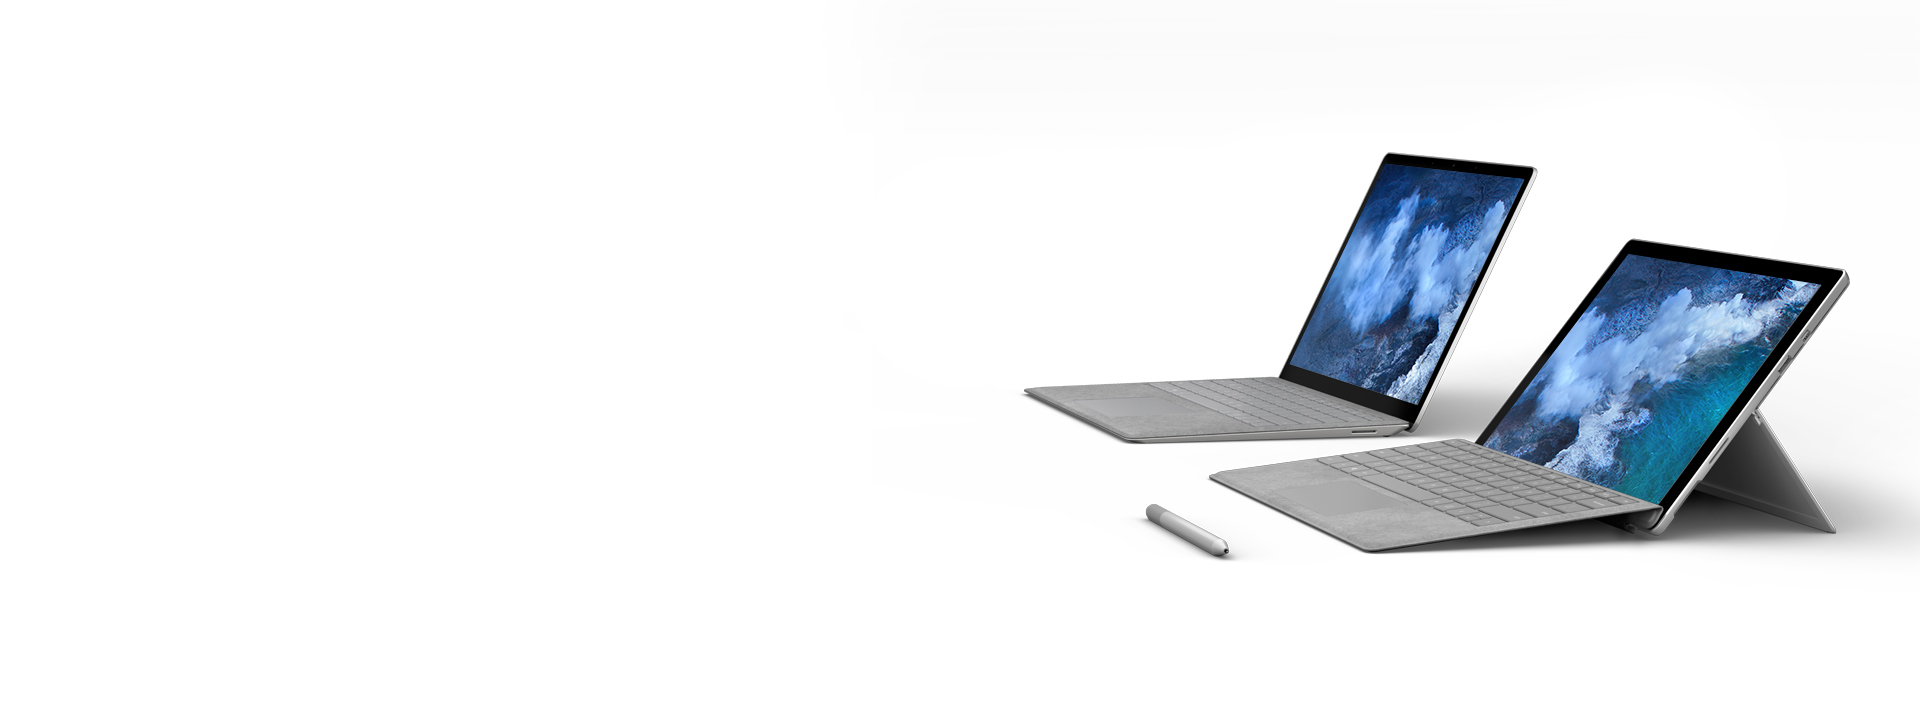 Surface Studio, Surface Book and Surface Pro 4